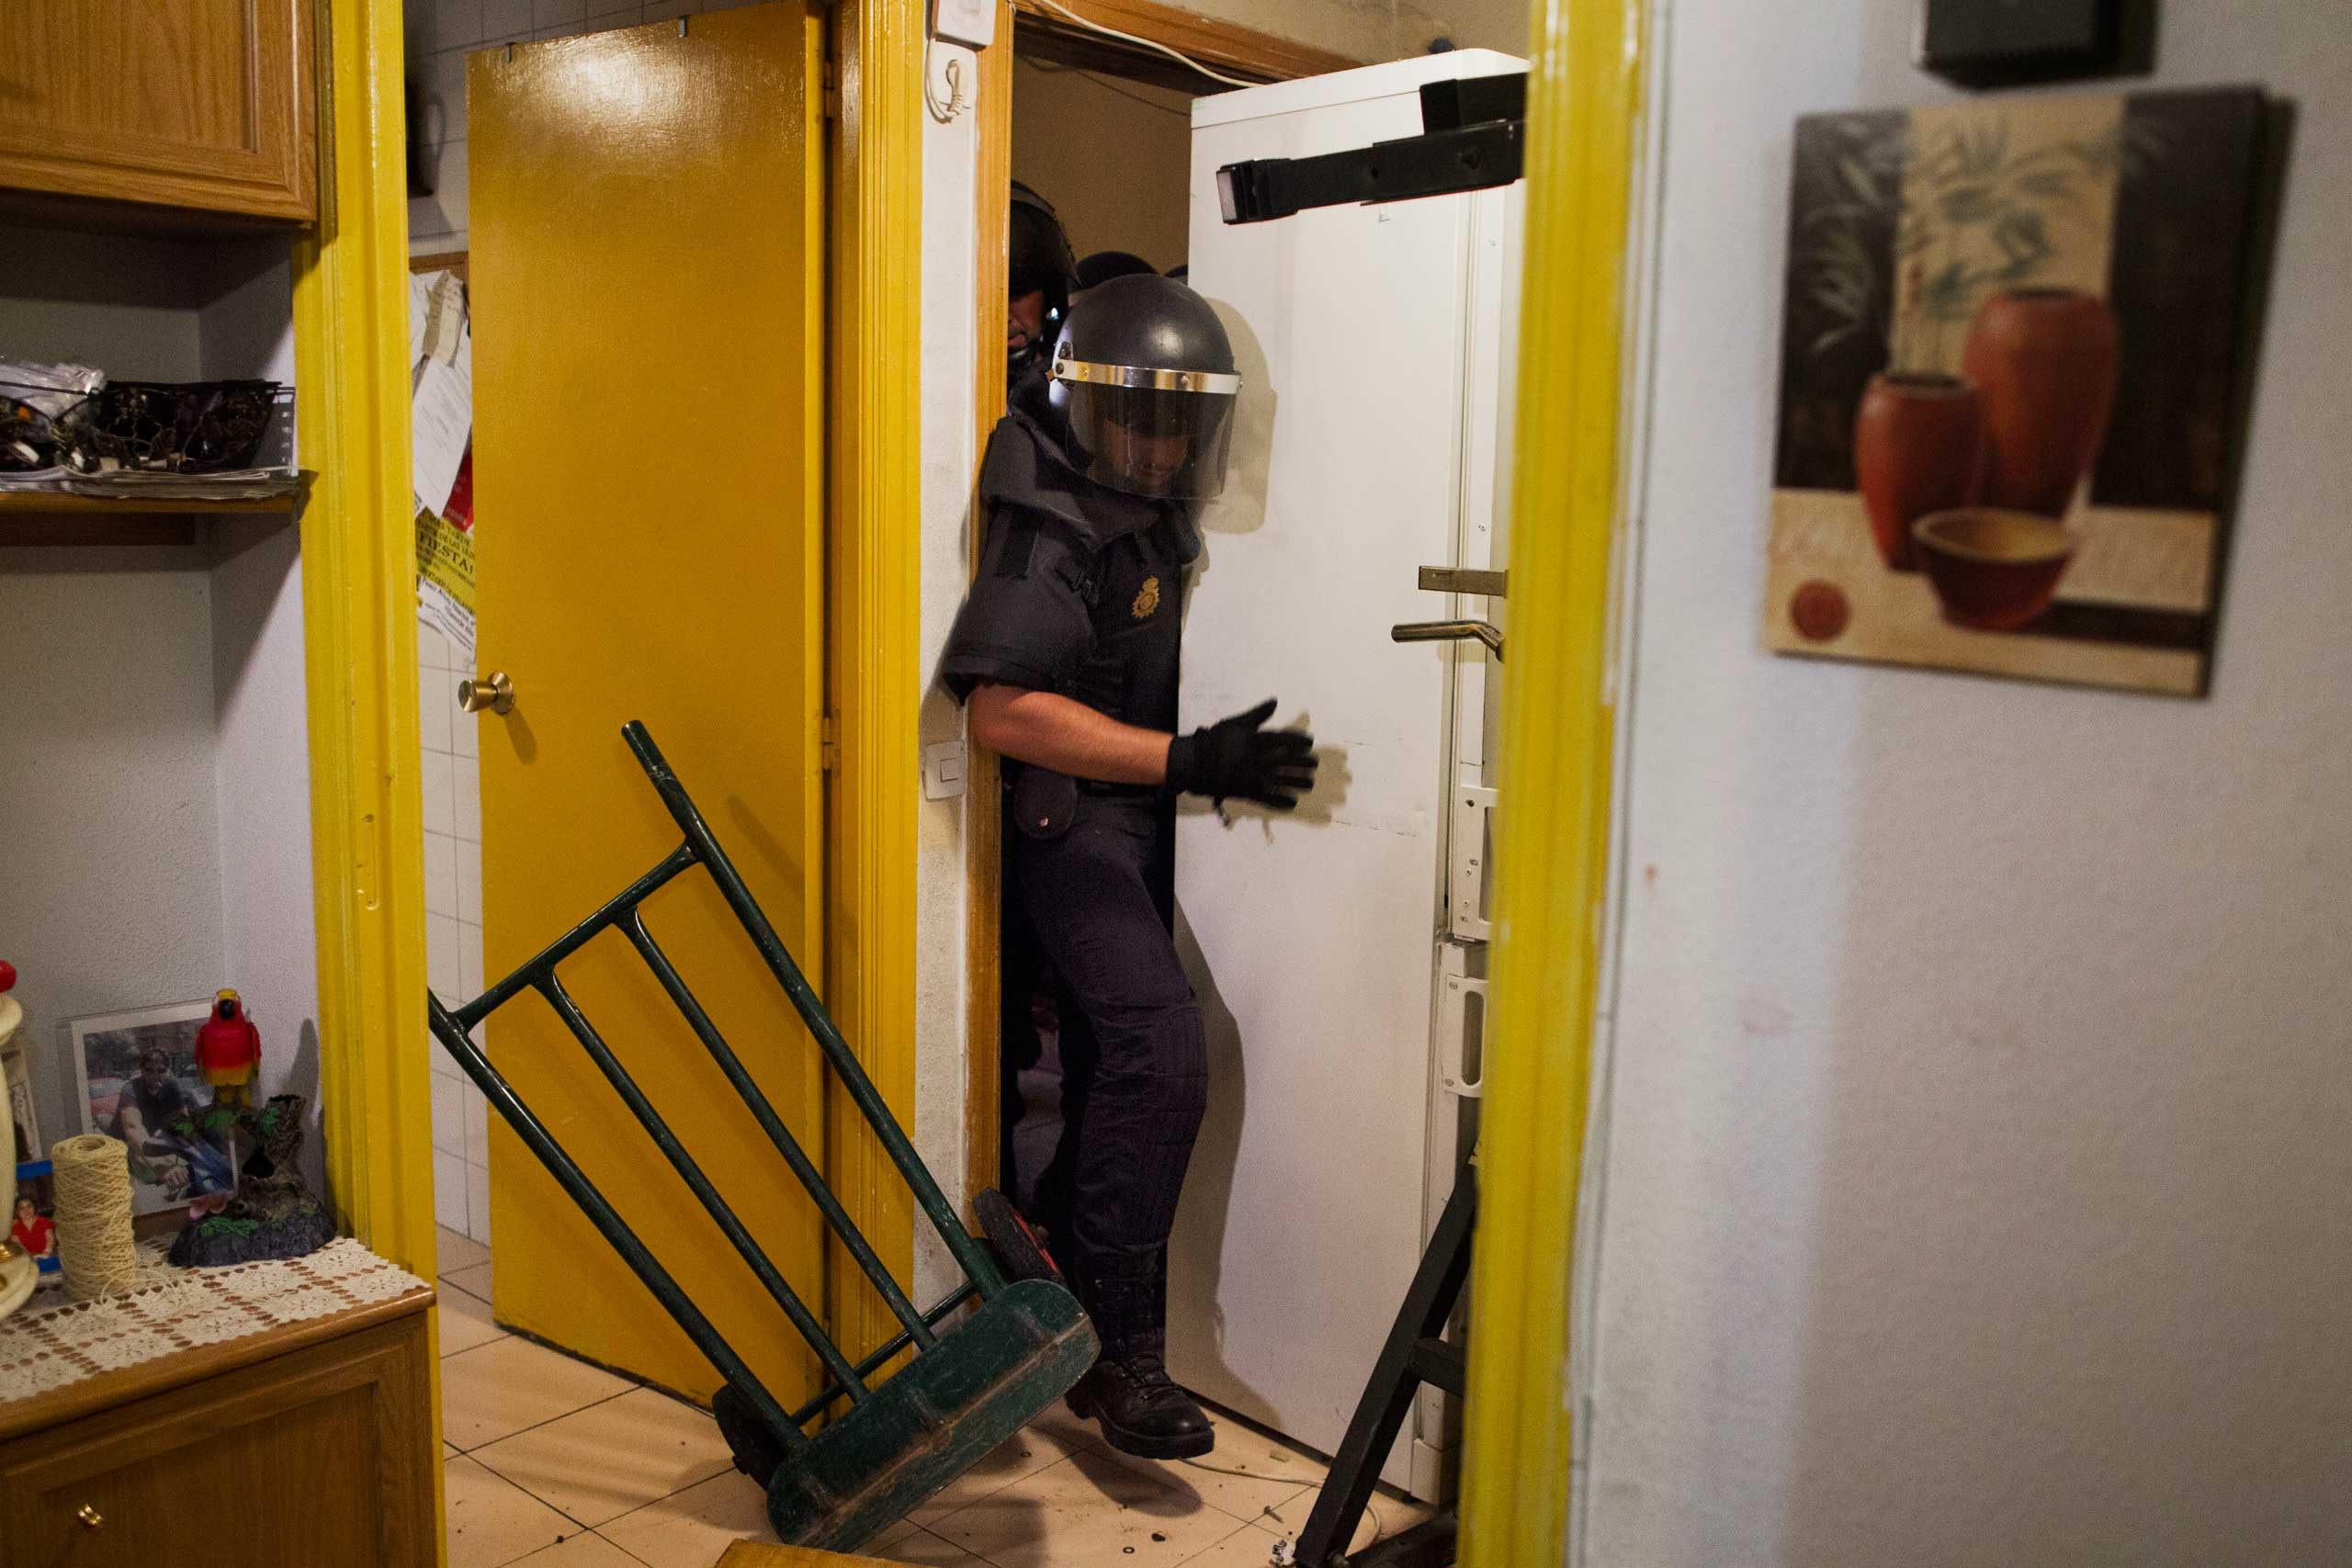 Police break into Maria Isabel Rodriguez Romero's apartment  to evict her family in Madrid. Sept. 2013.